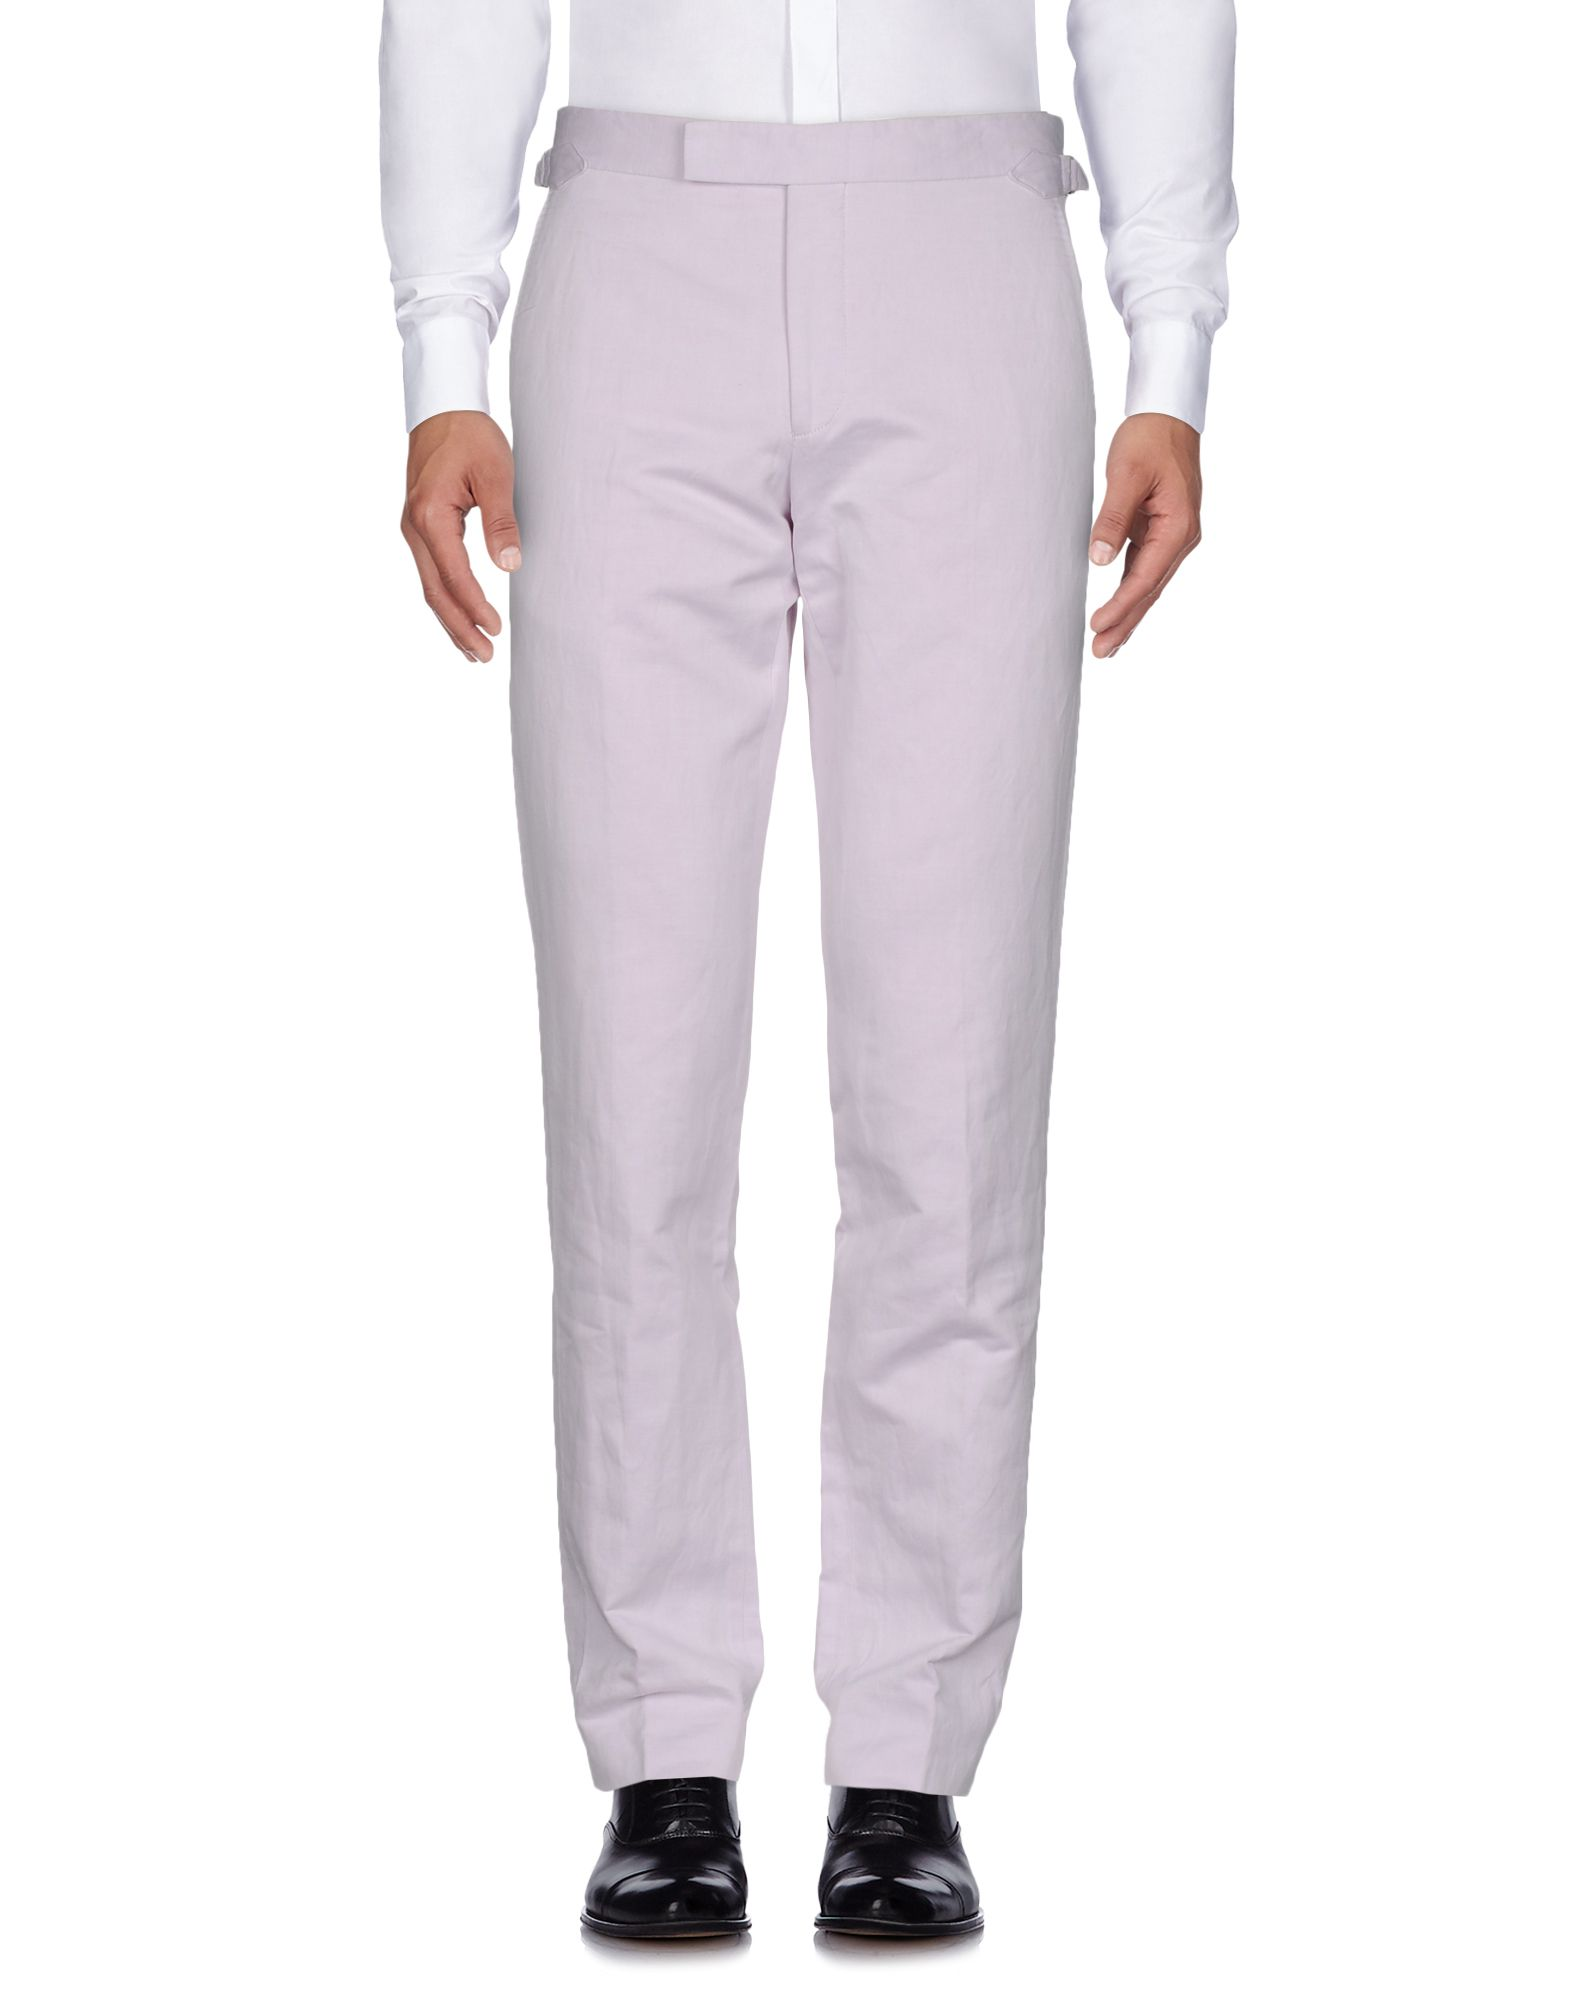 RICHARD JAMES Casual Pants in Light Pink